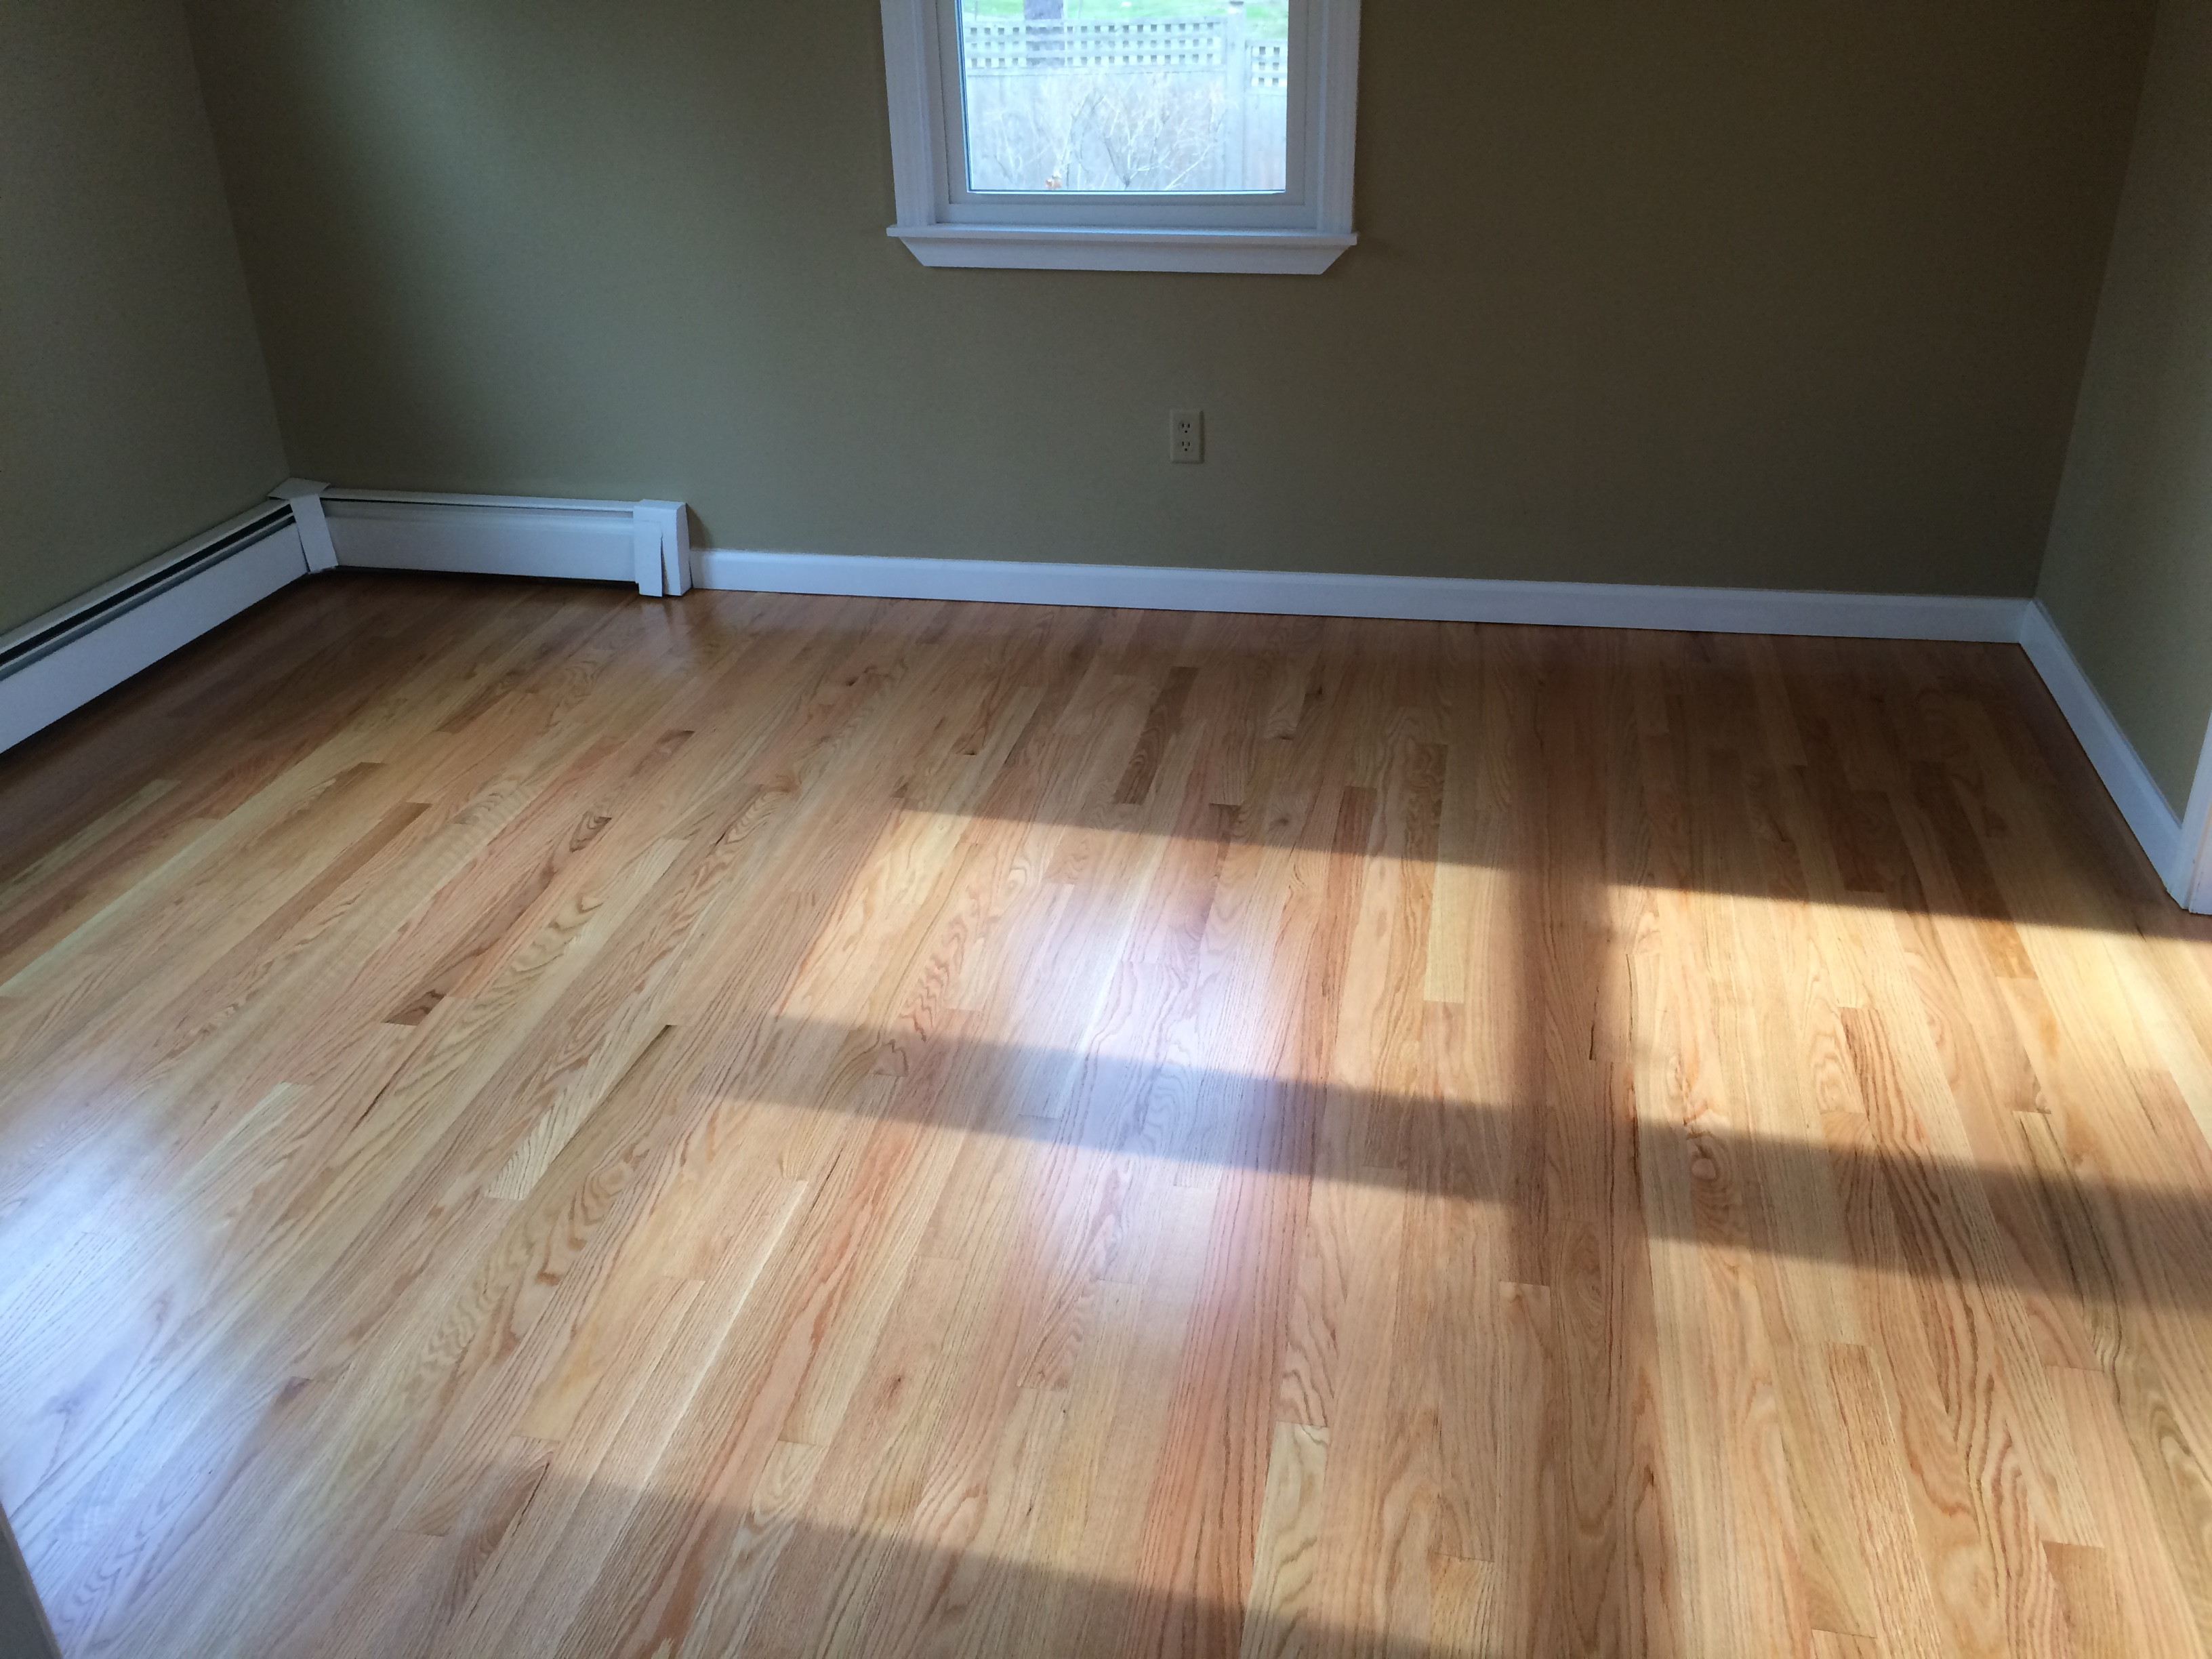 hardwood floor refinishing ct hardwood floor refinishing syracuse ny flooring home decorating